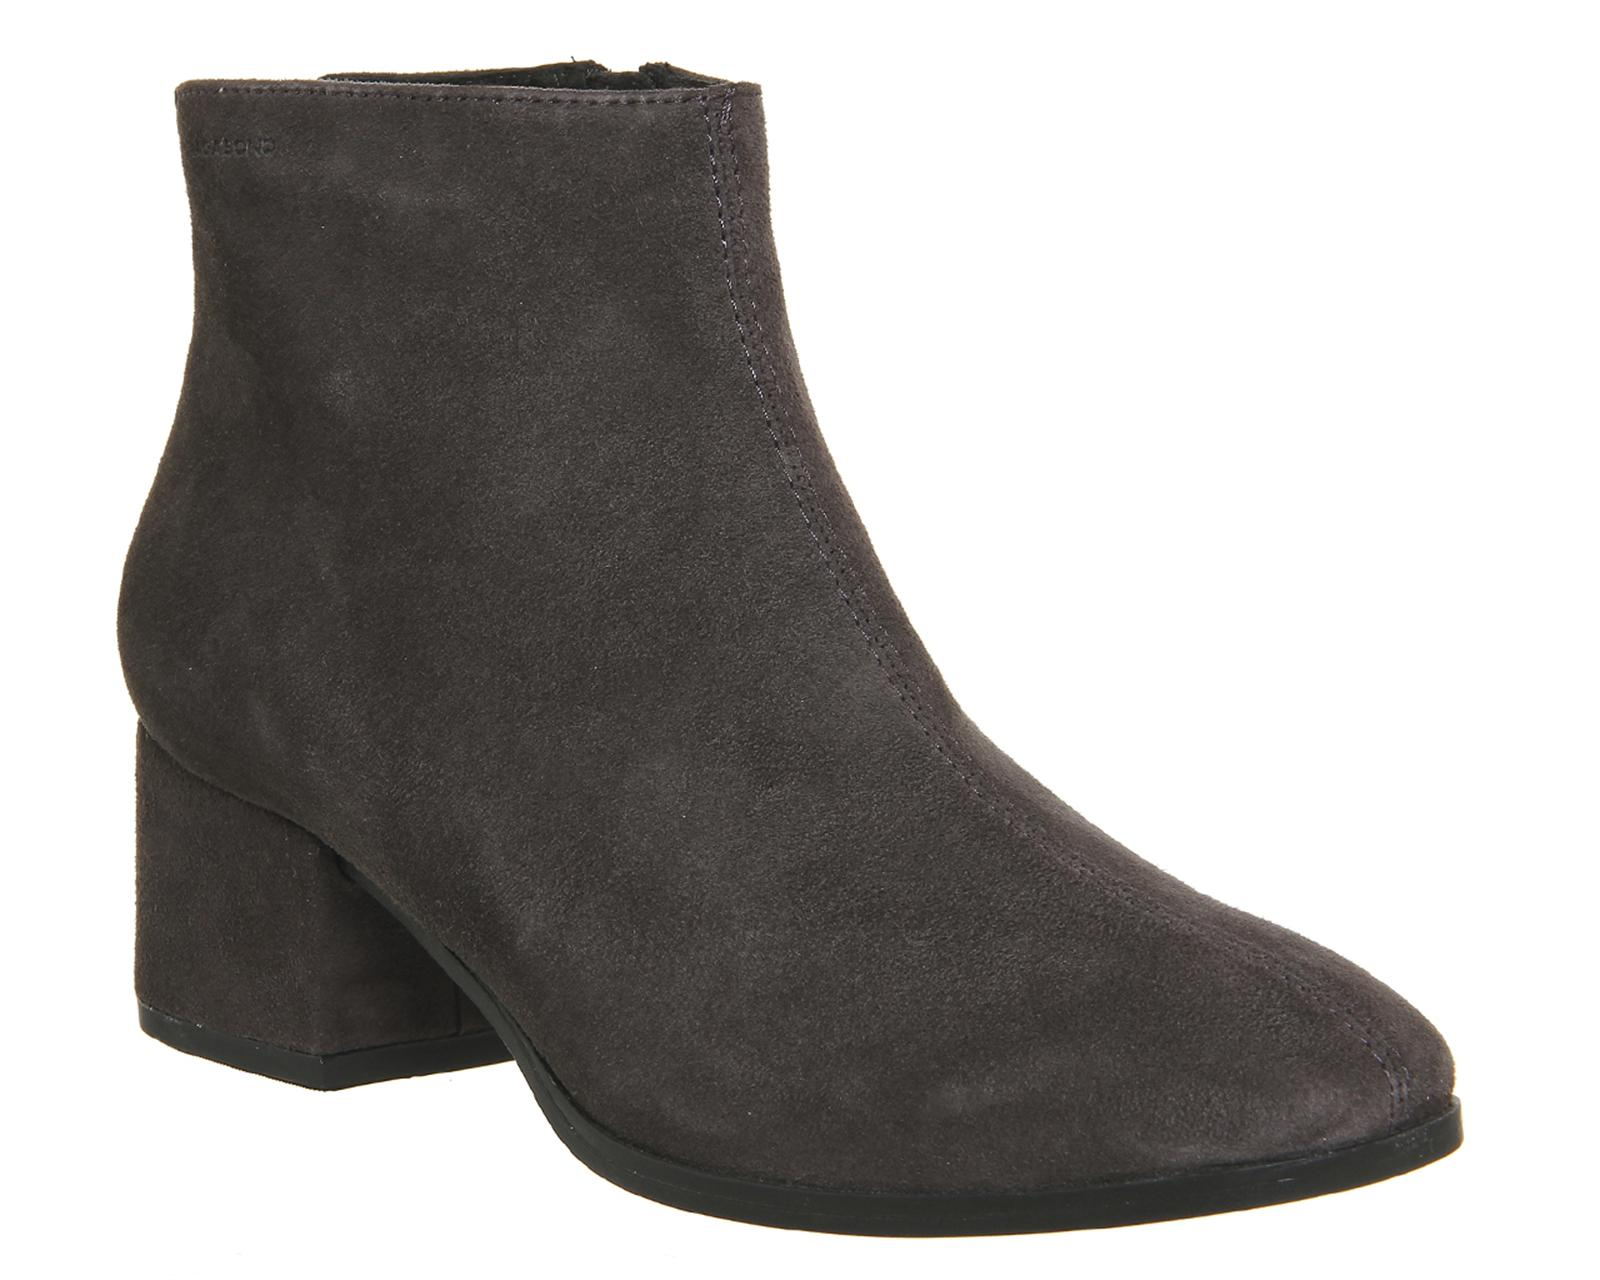 Vagabond Daisy Ankle Boots in Gray - Lyst 677744f86e